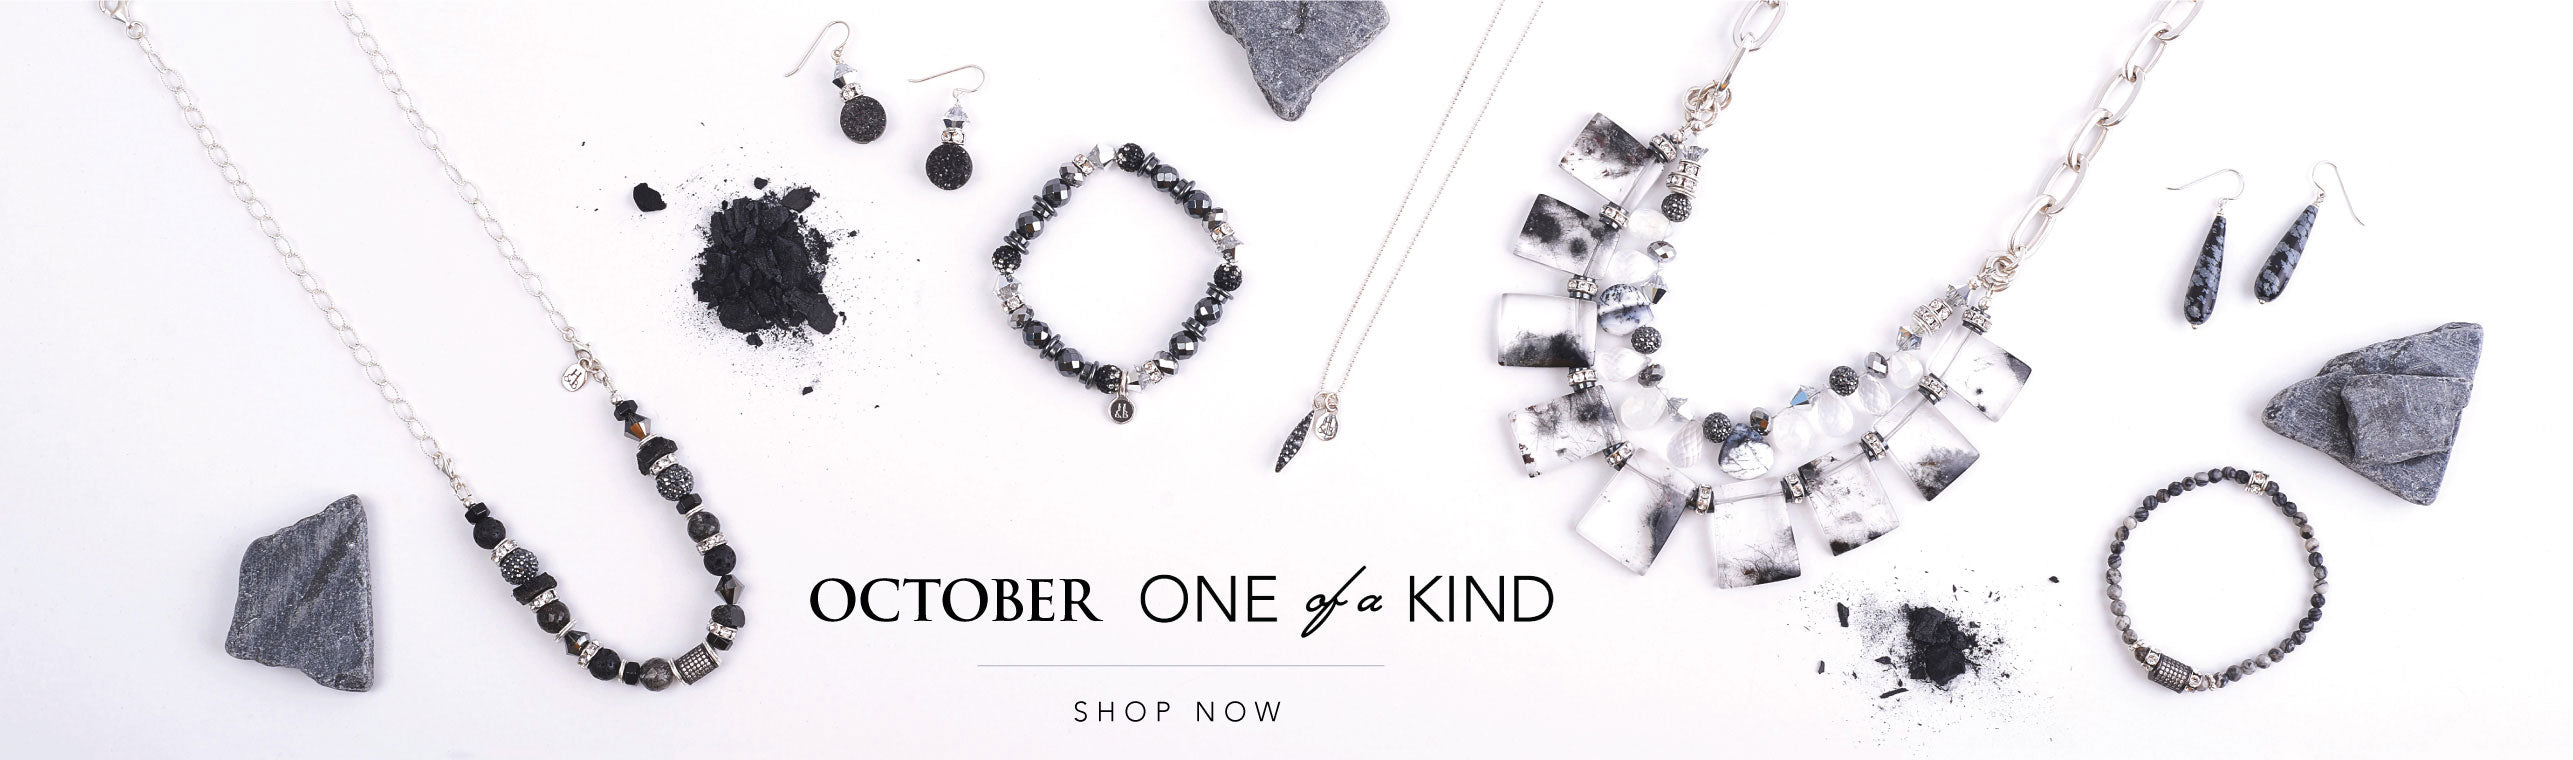 October One of a Kind Friday